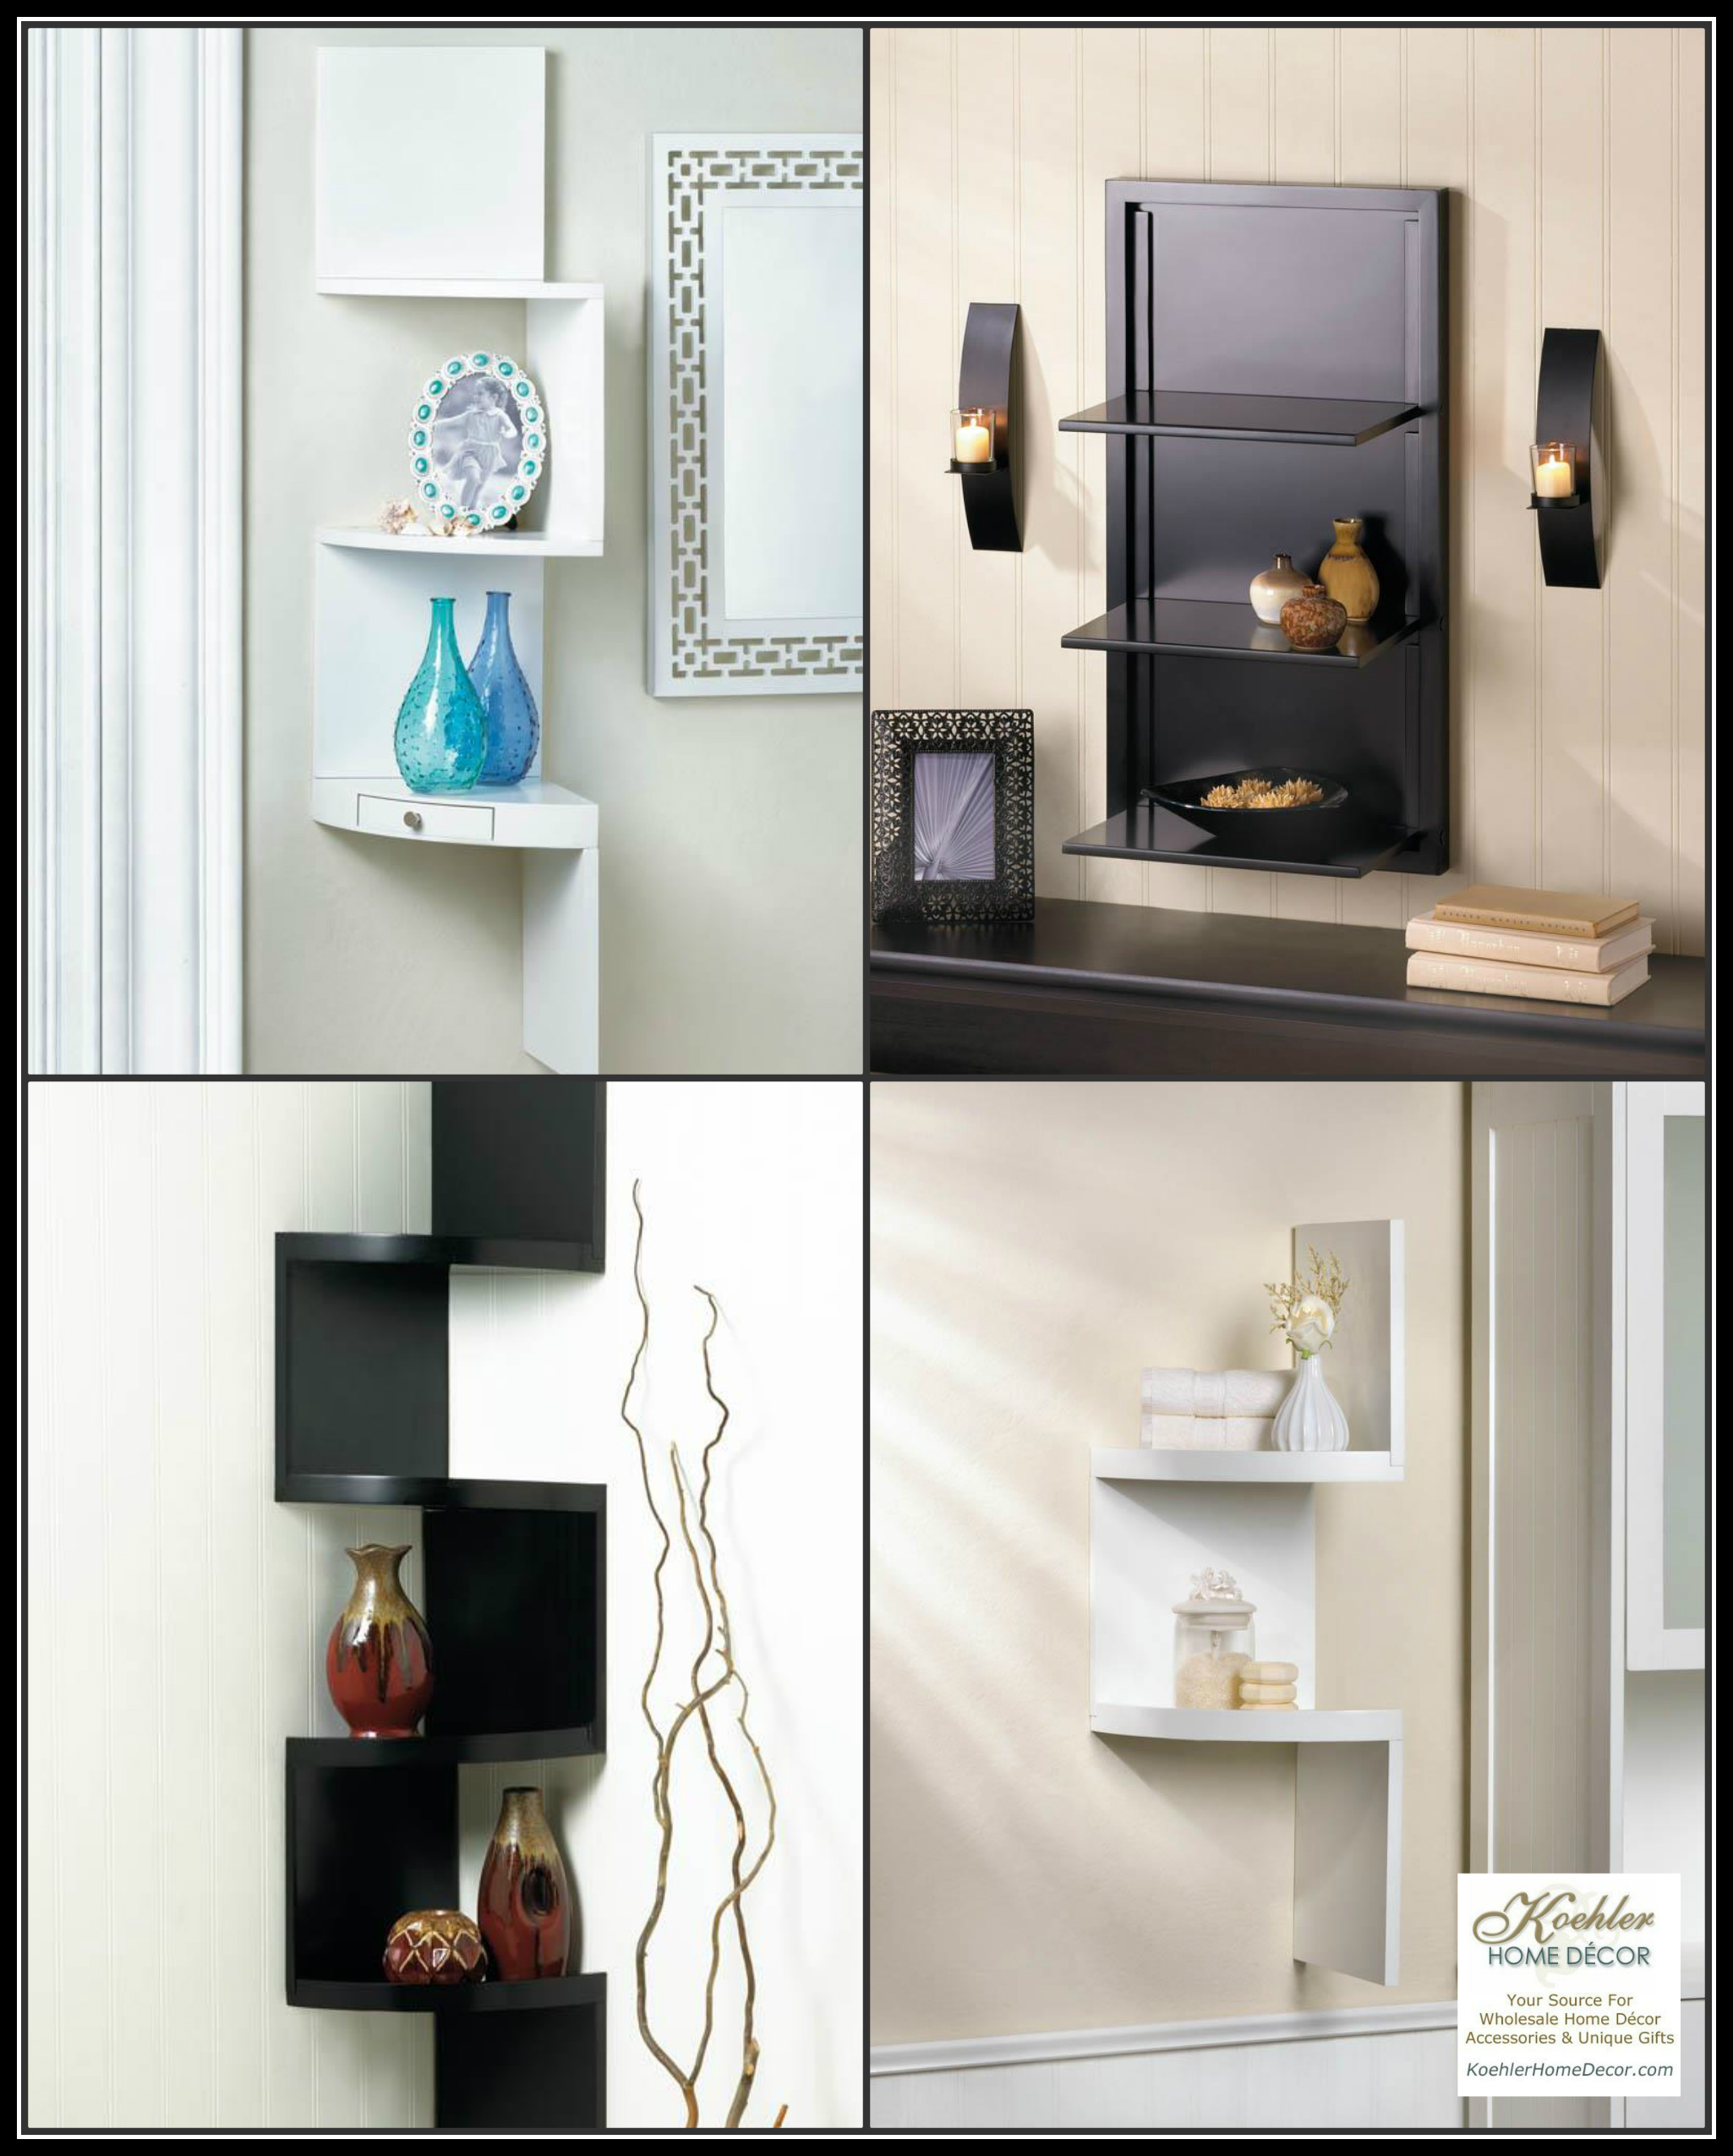 New at KHD – Stylish Shelving Solutions